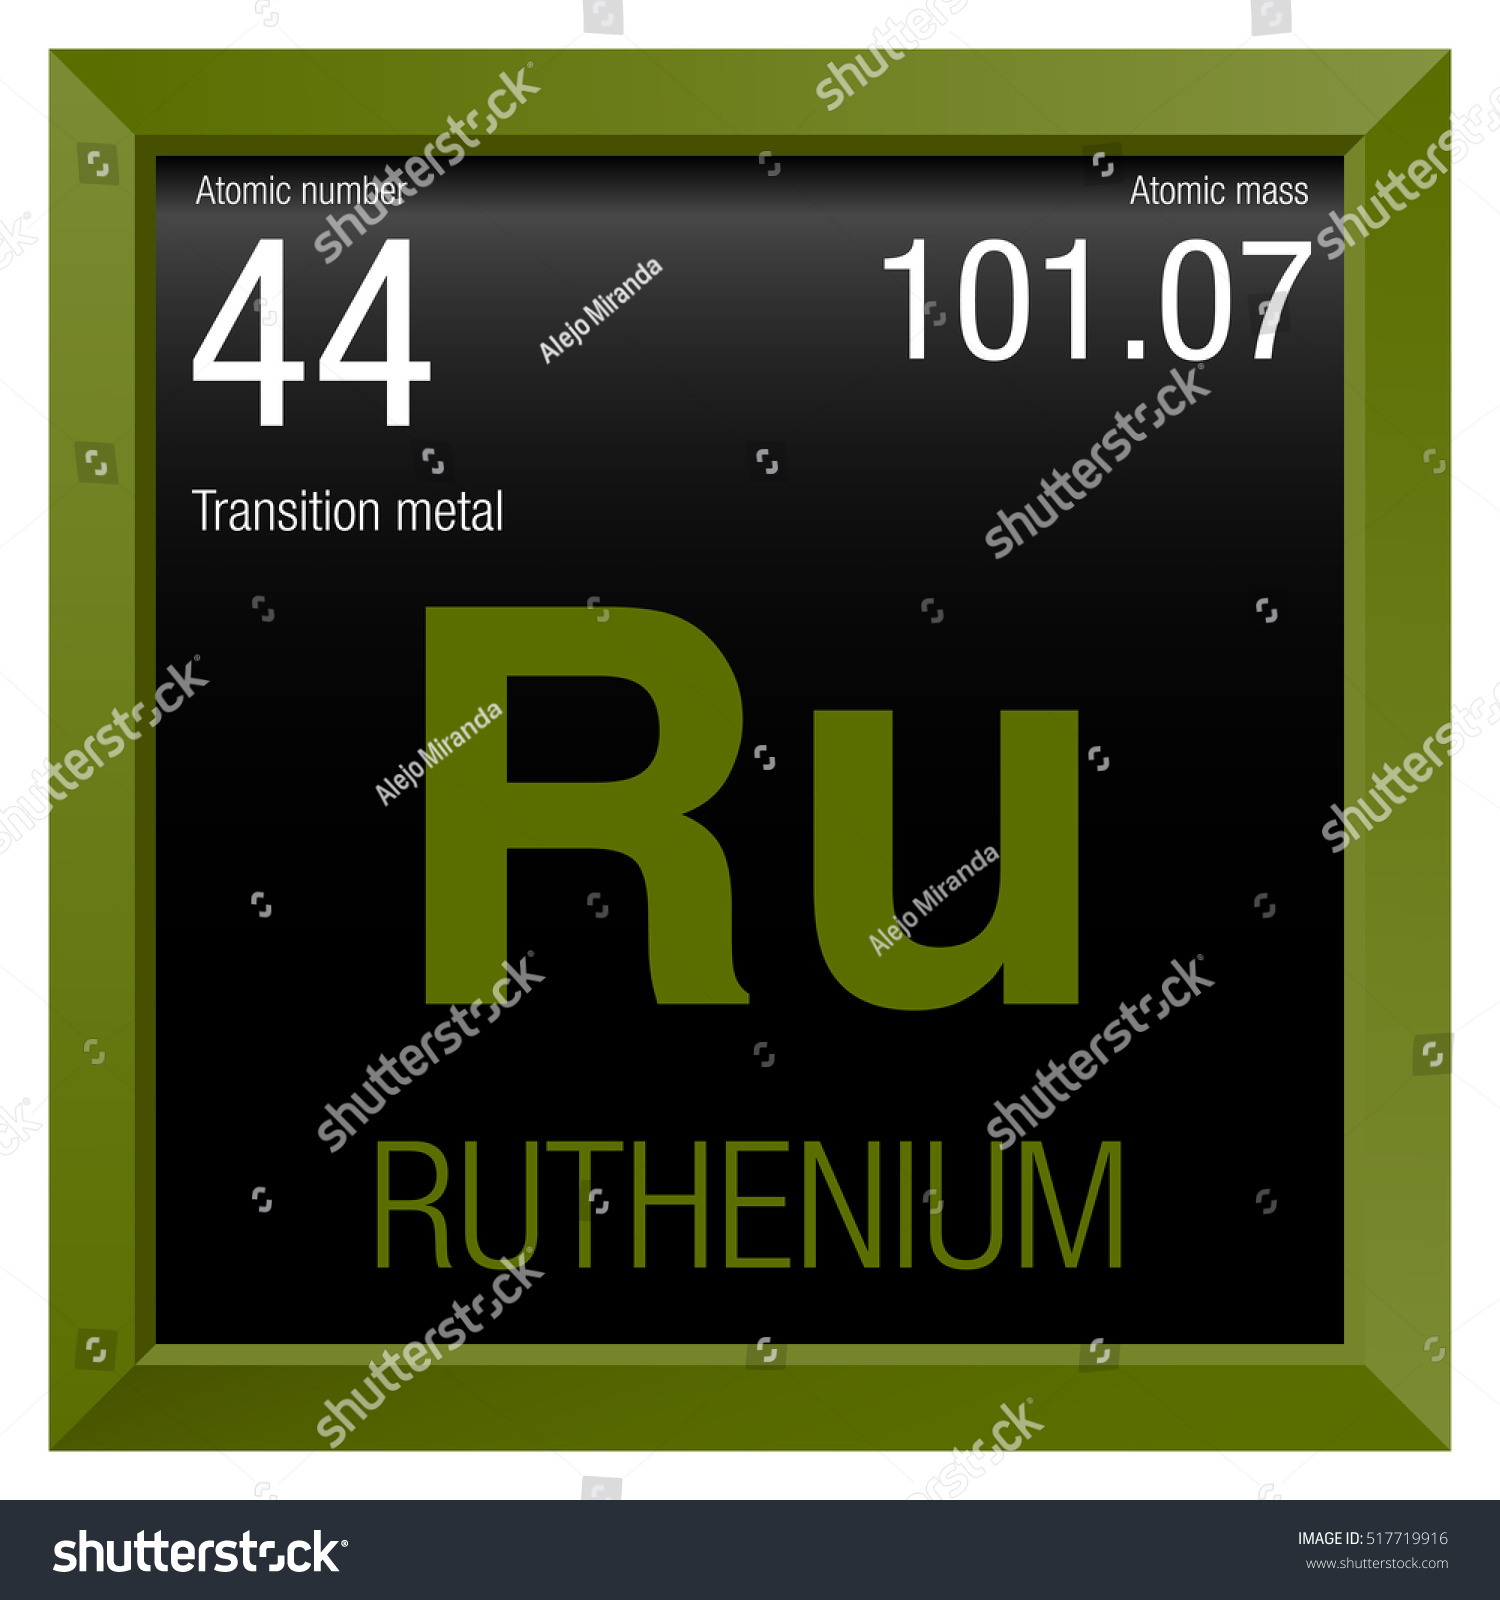 Ruthenium symbol element number 44 periodic stock vector 517719916 ruthenium symbol element number 44 of the periodic table of the elements chemistry gamestrikefo Choice Image